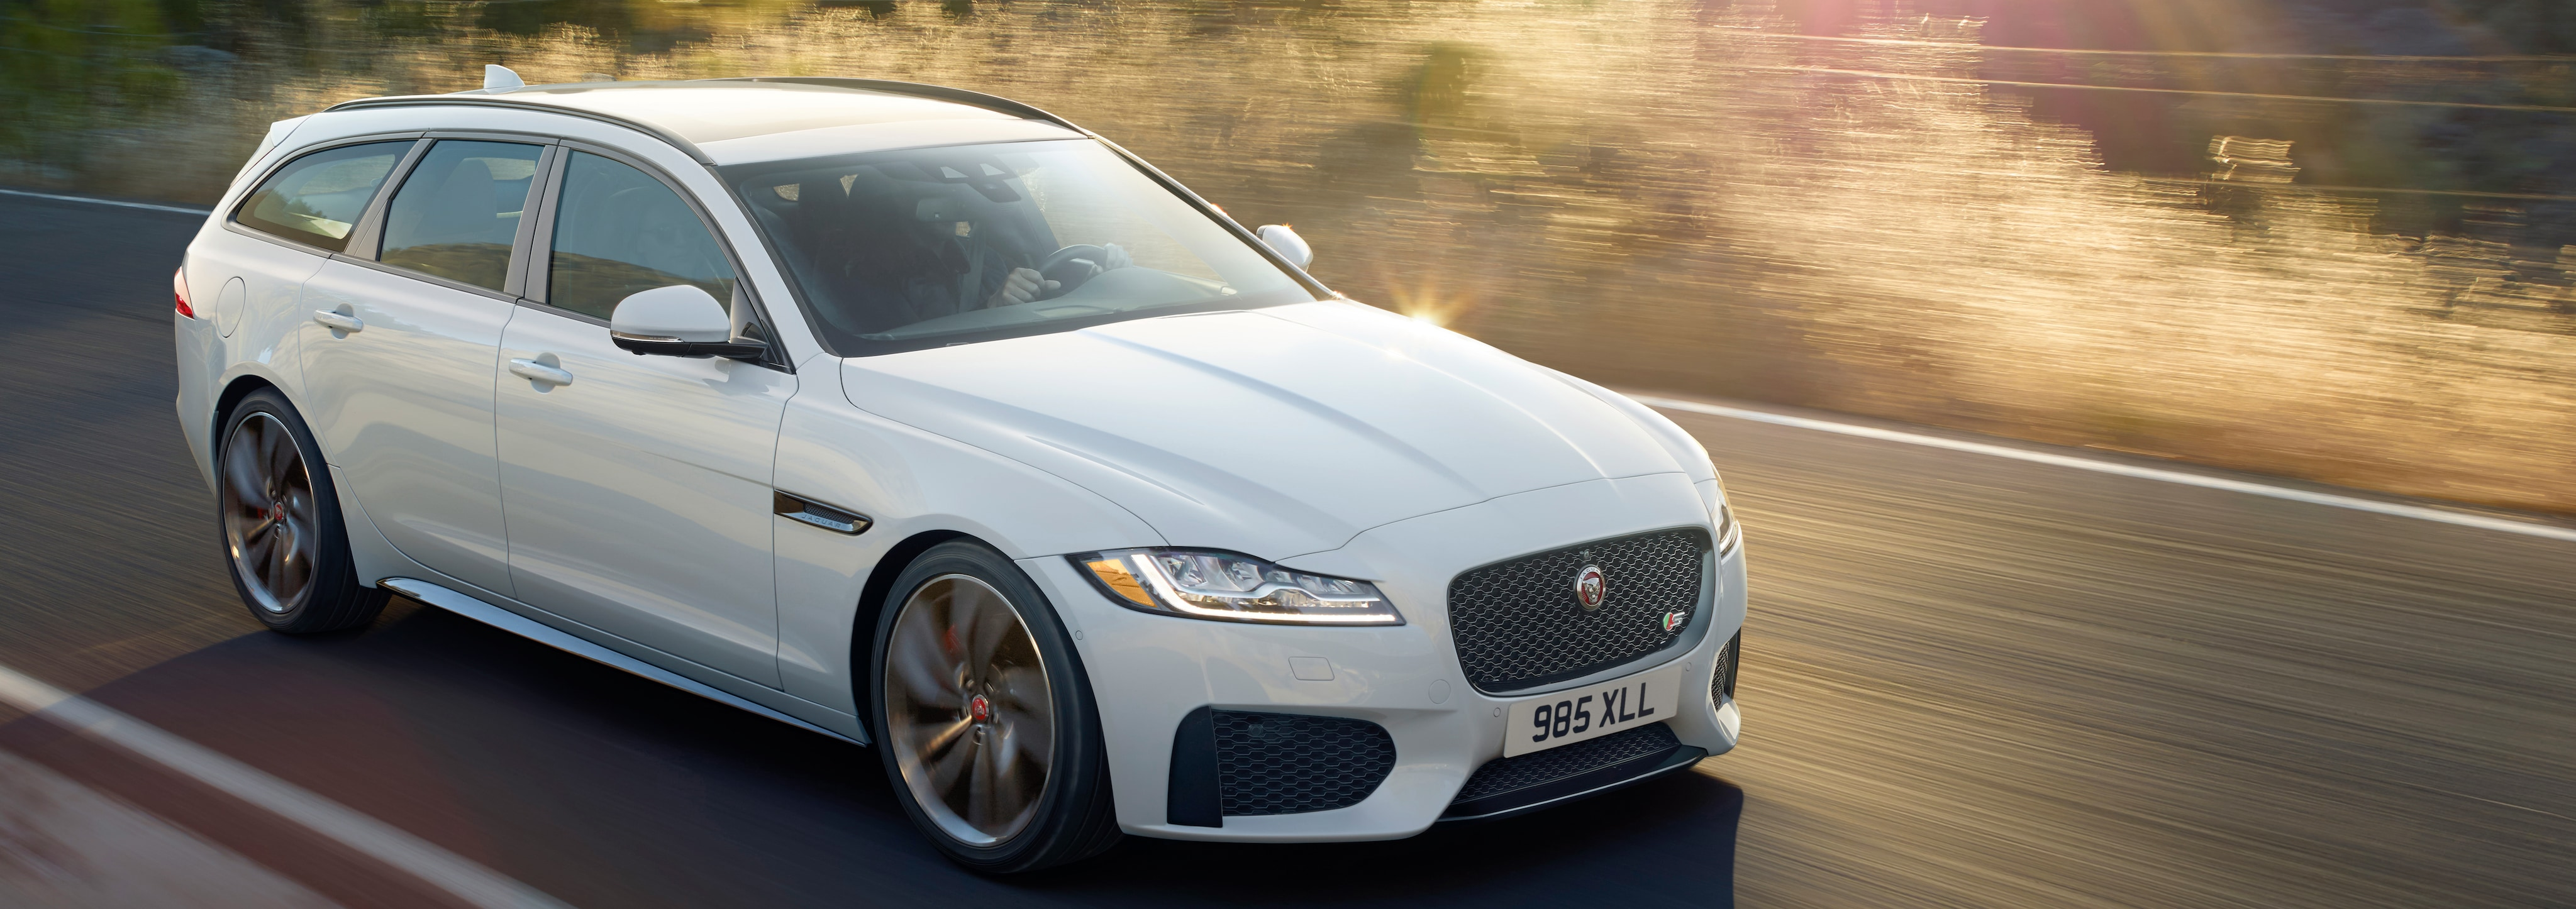 Exterior of the Jaguar XF Sportbrake in motion.